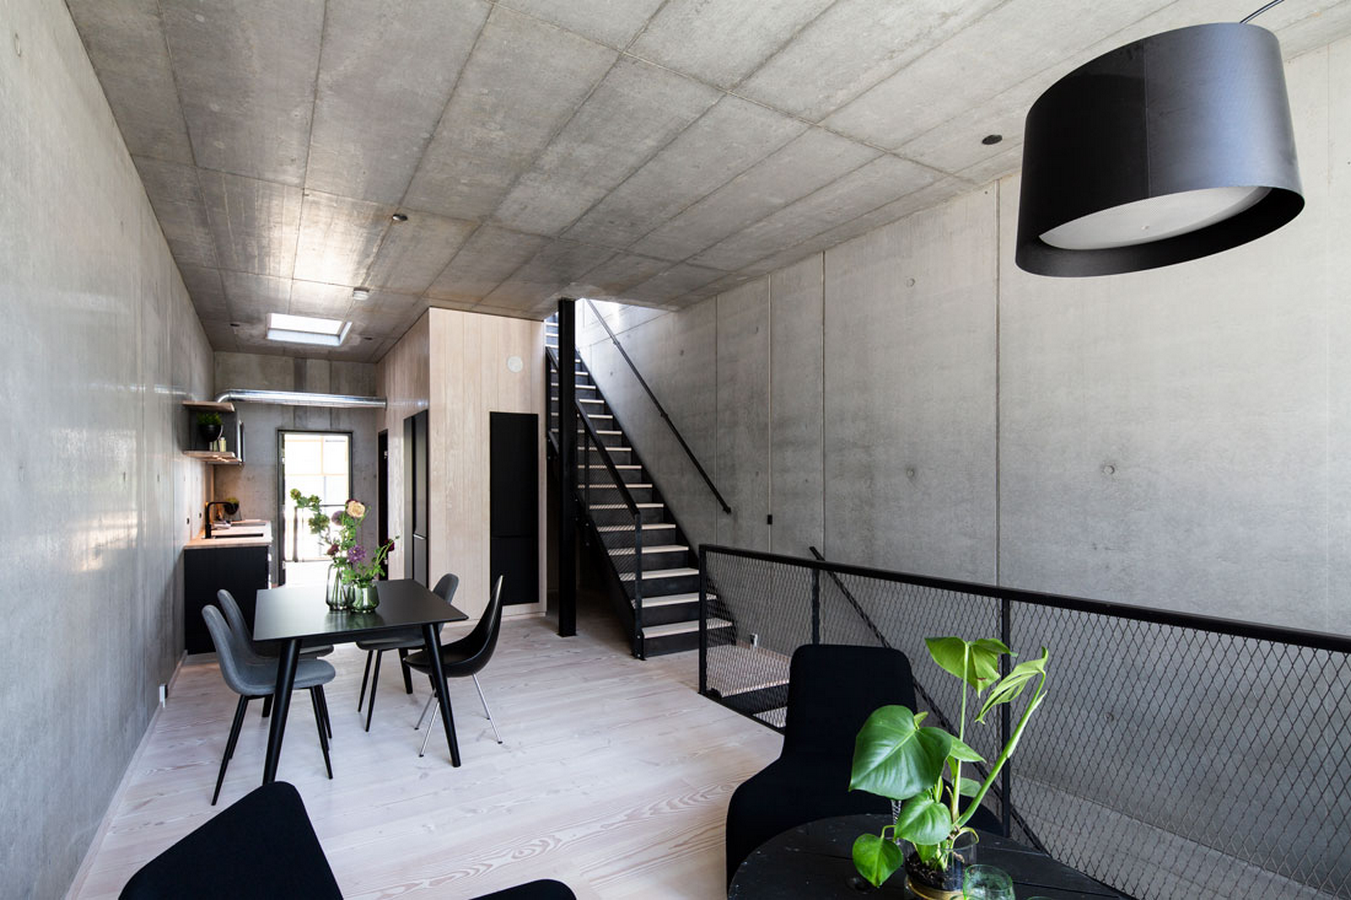 10 examples of recycled concrete - Sheet1